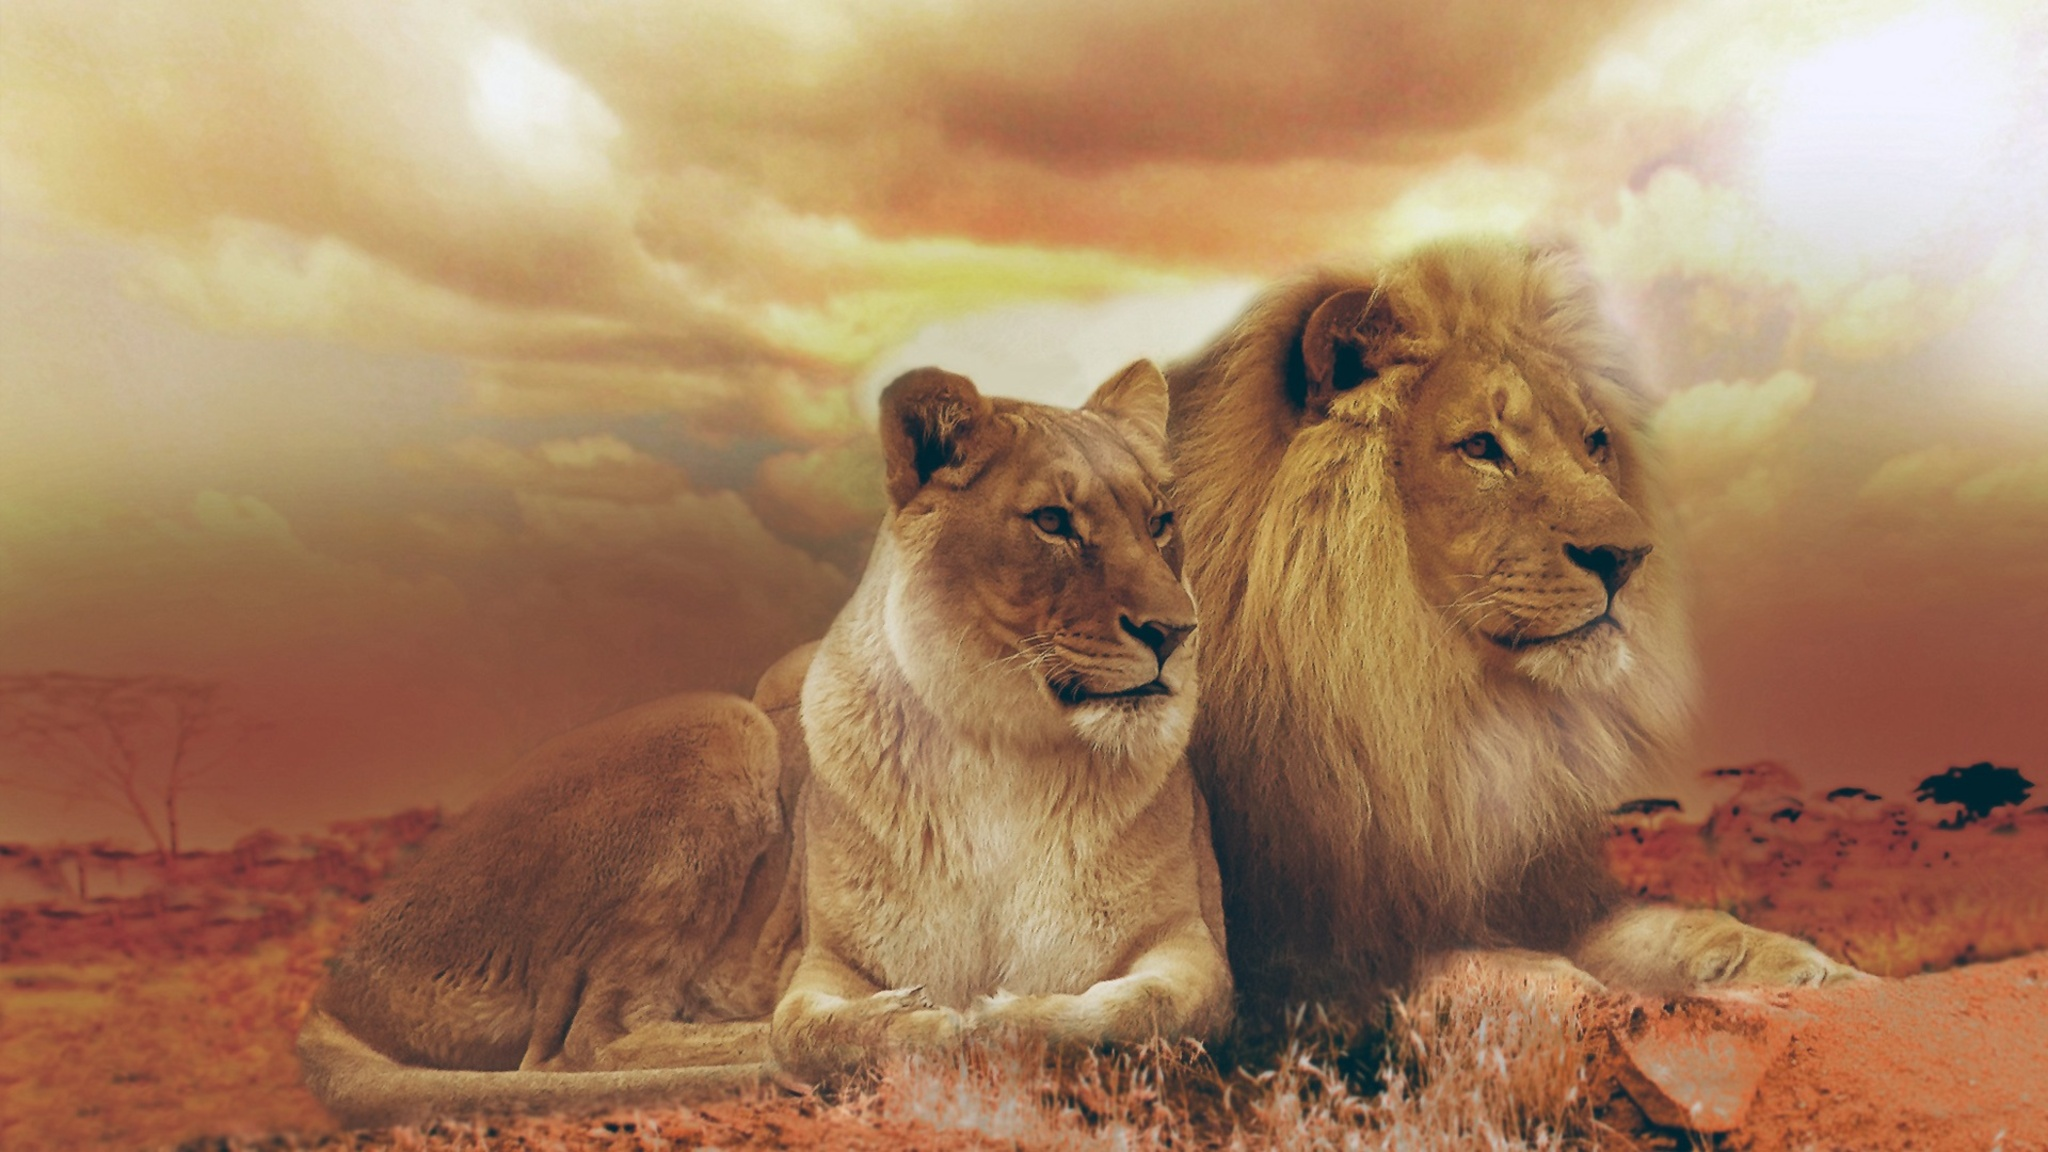 2048x1152 Lion And Lioness 2048x1152 Resolution Hd 4k Wallpapers